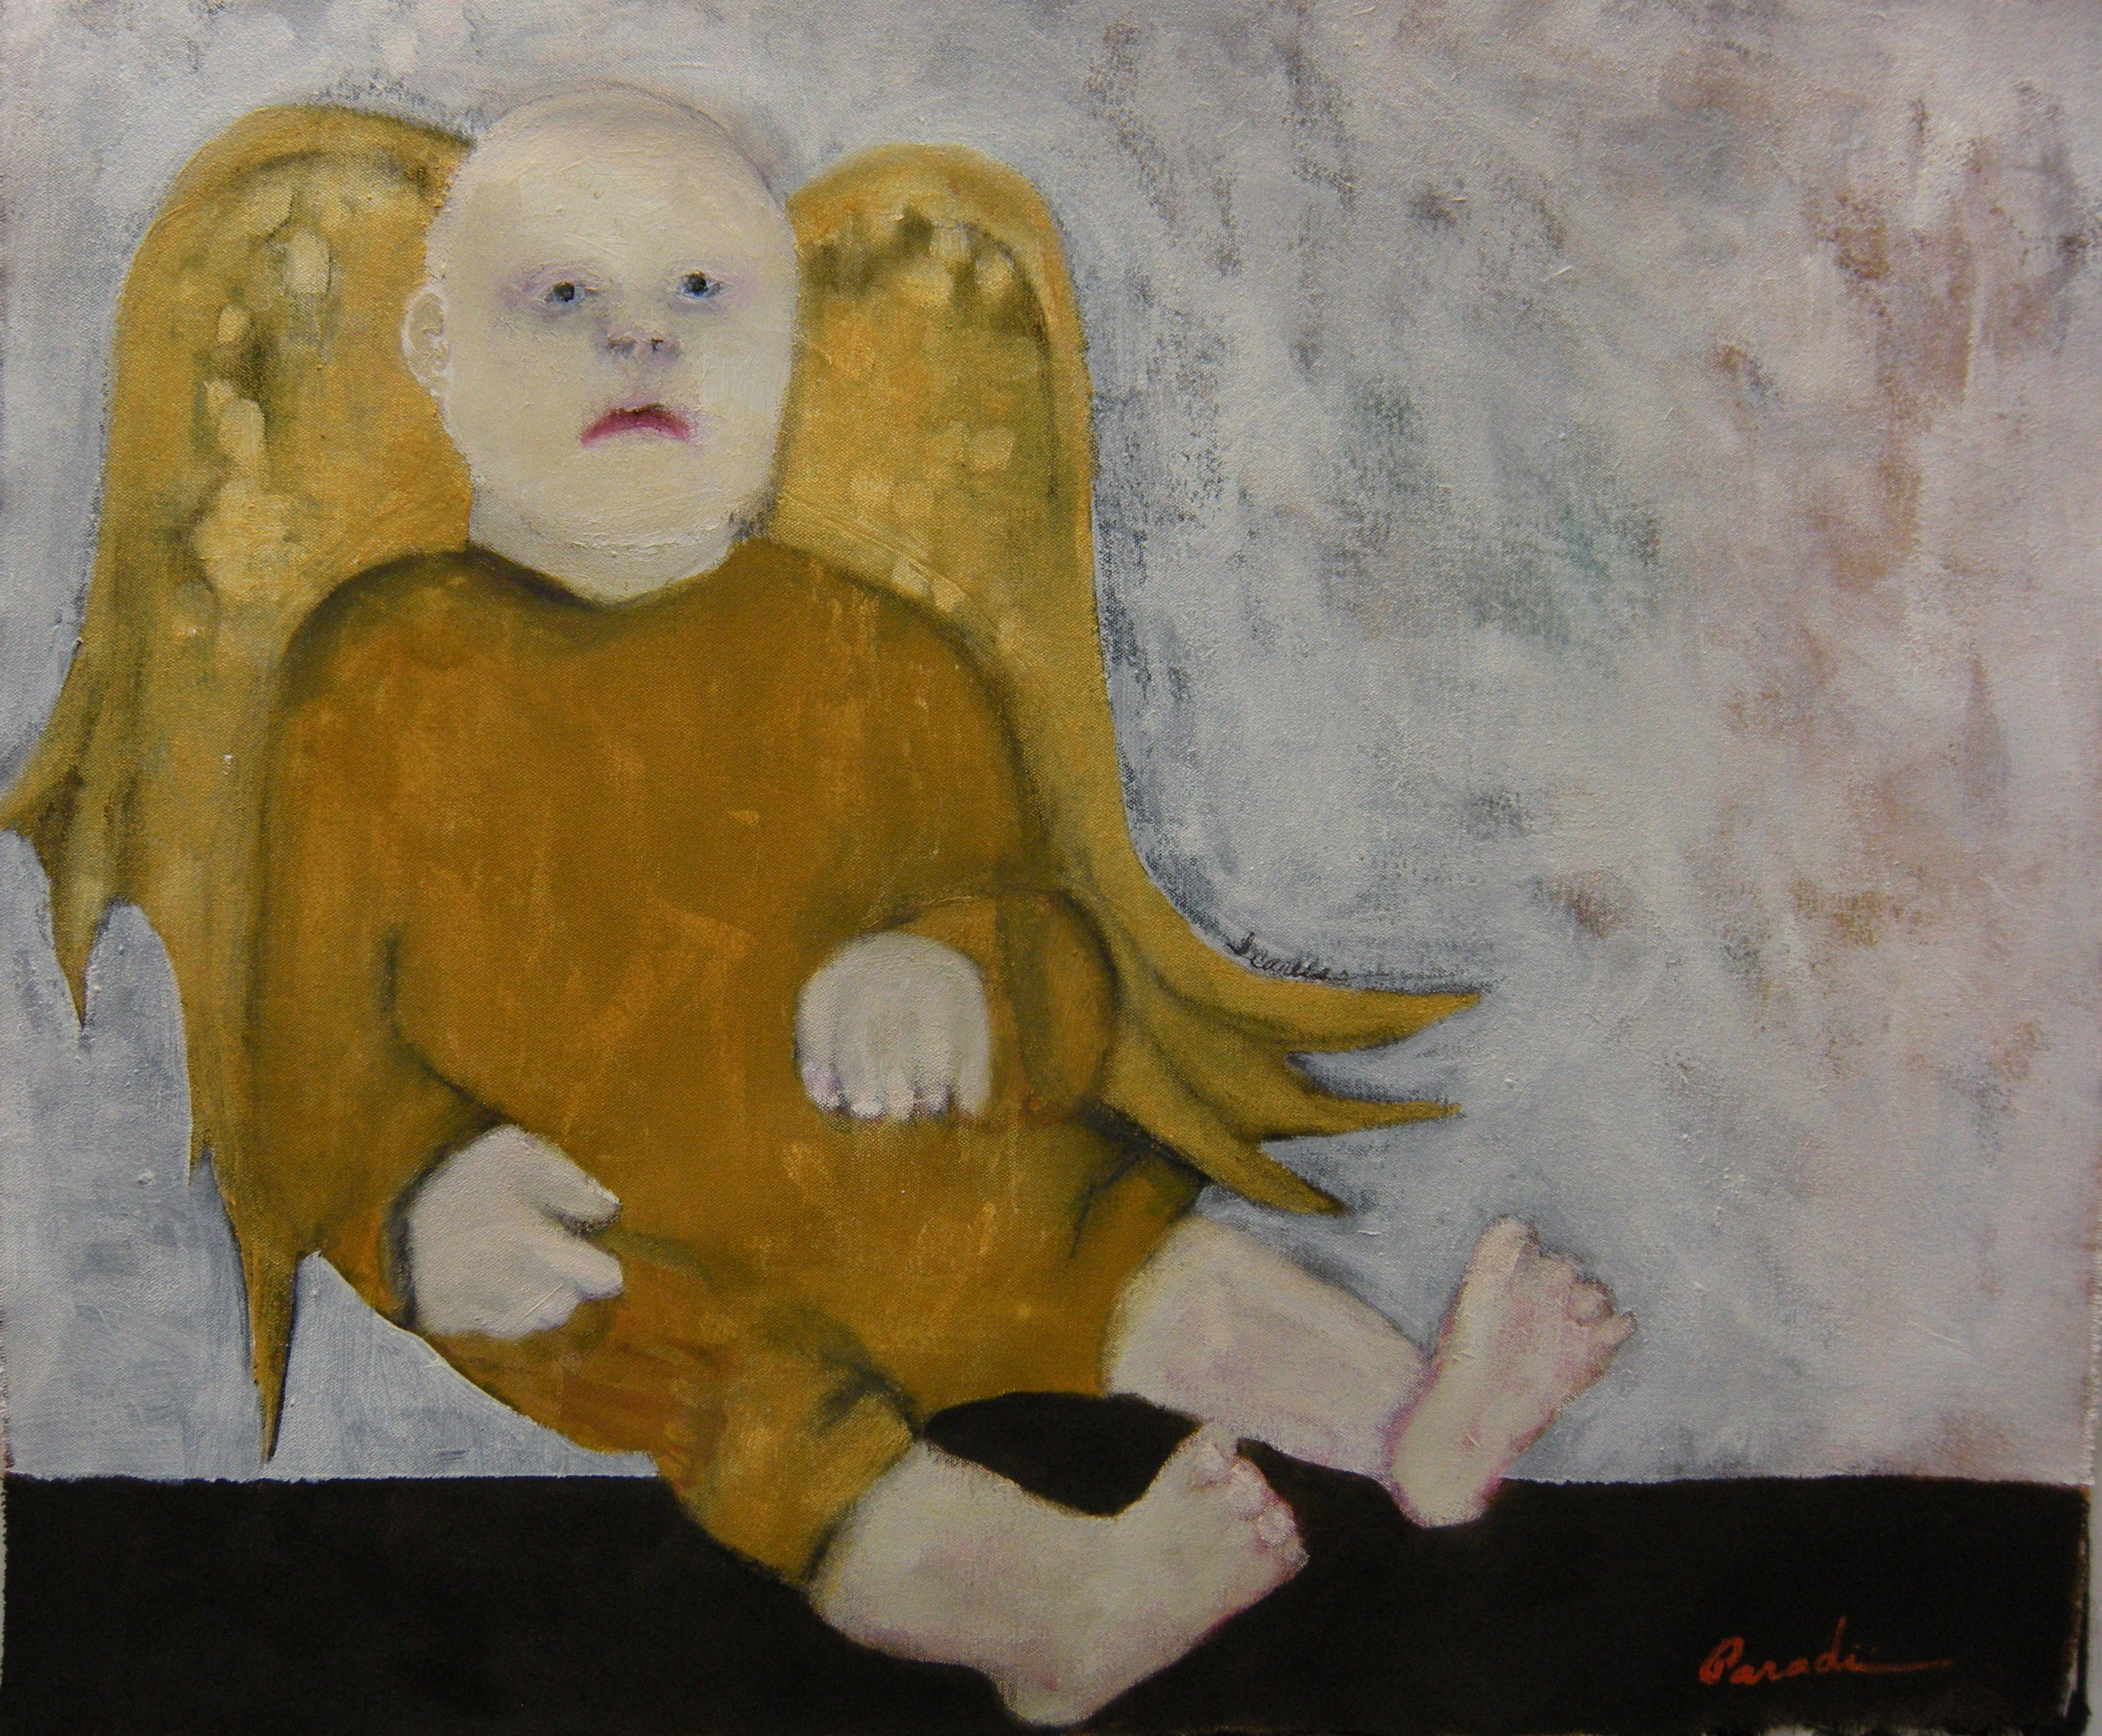 Icarus oil on unstretched canvas 2009 by J.Paradisi